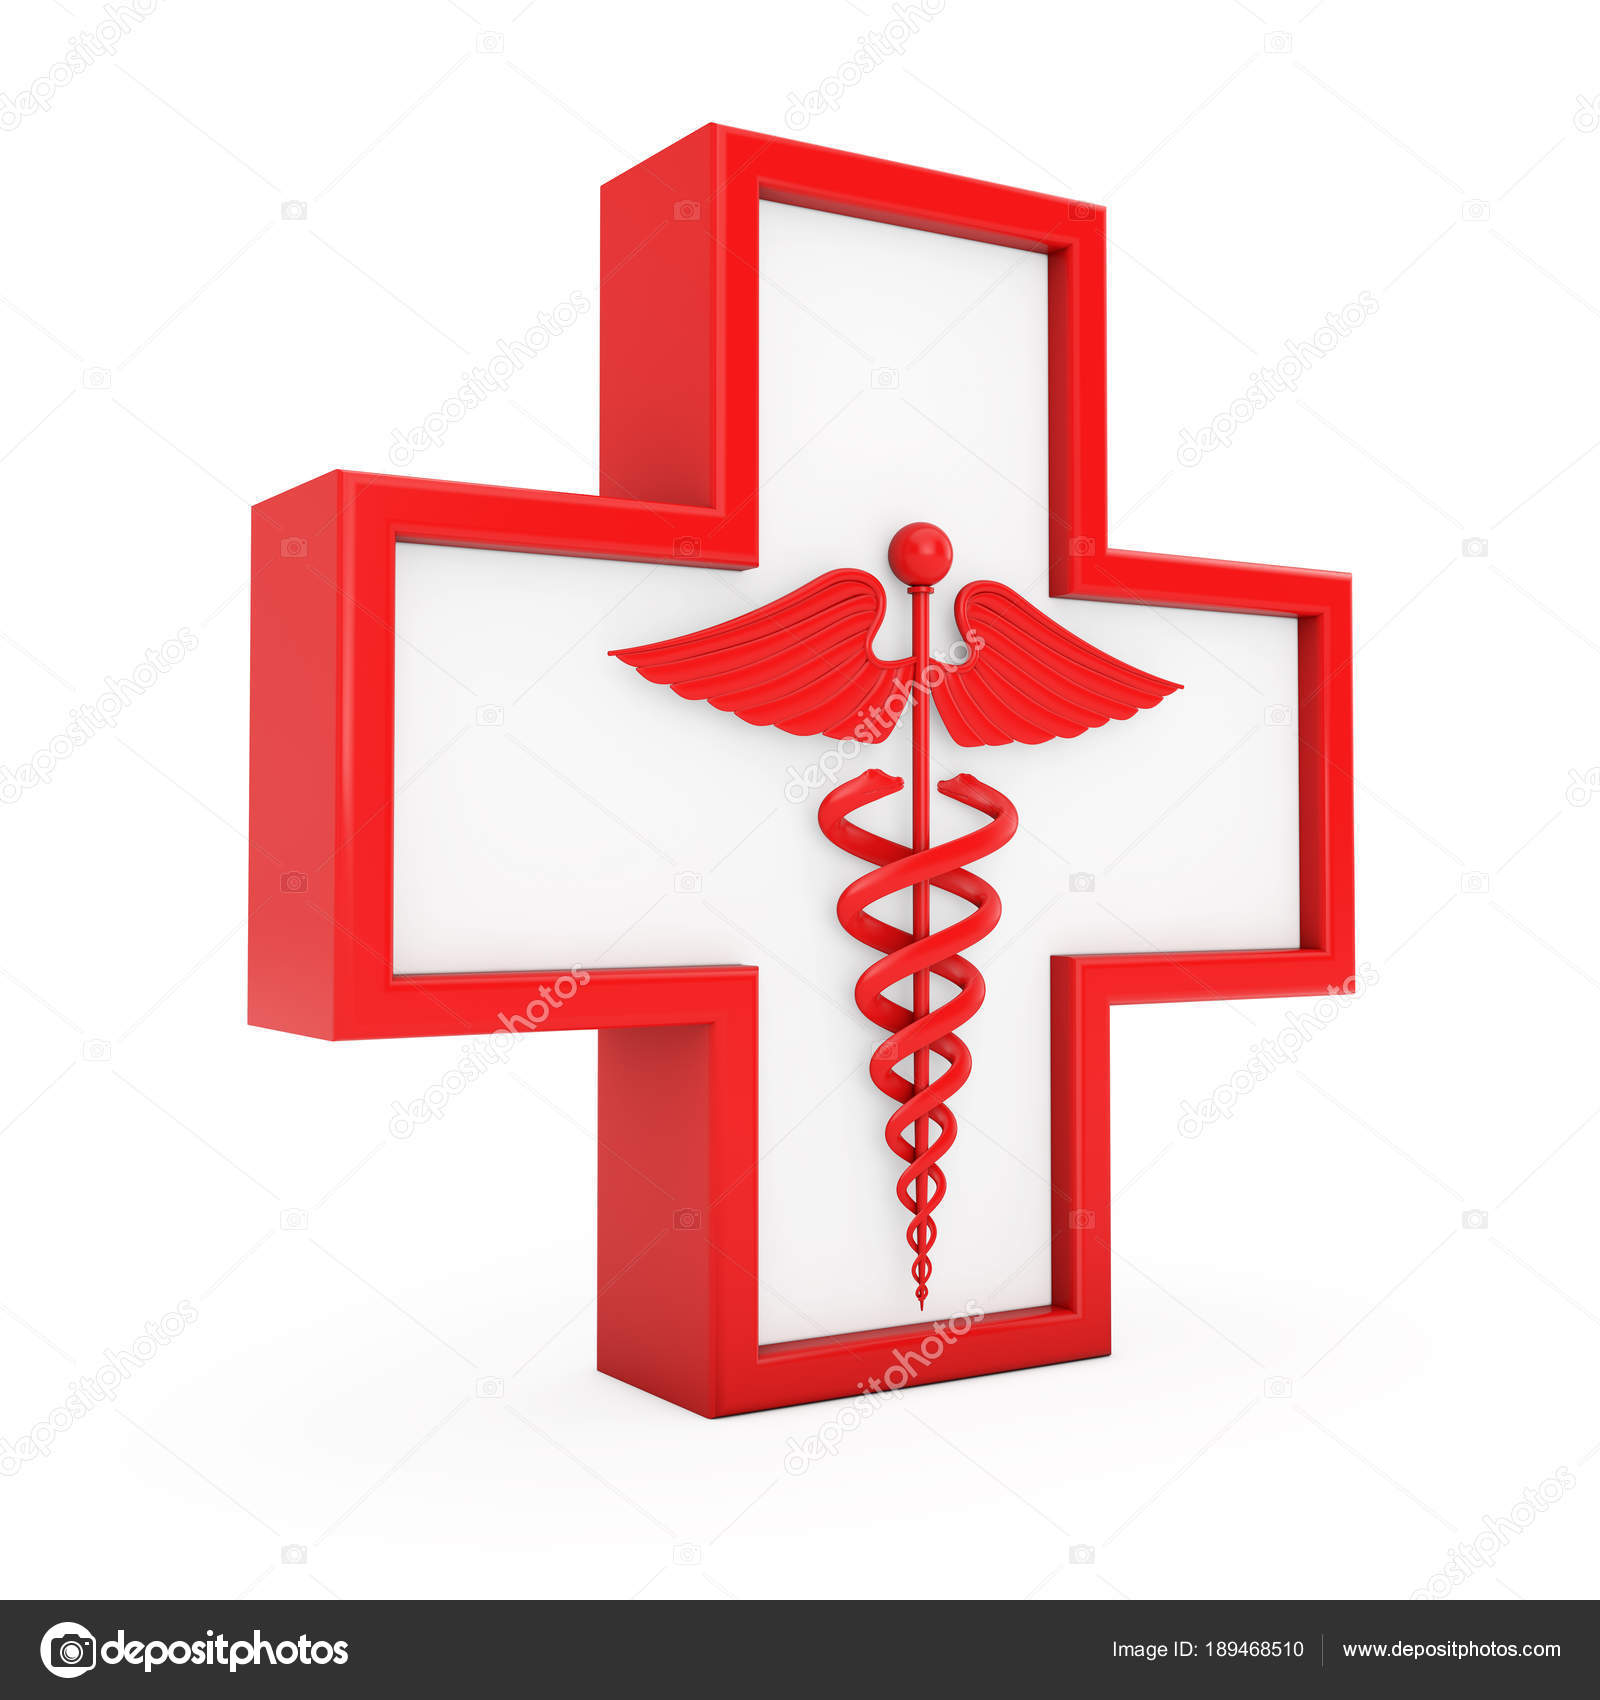 Red Medical Caduceus Symbol In Cross 3d Rendering Stock Photo